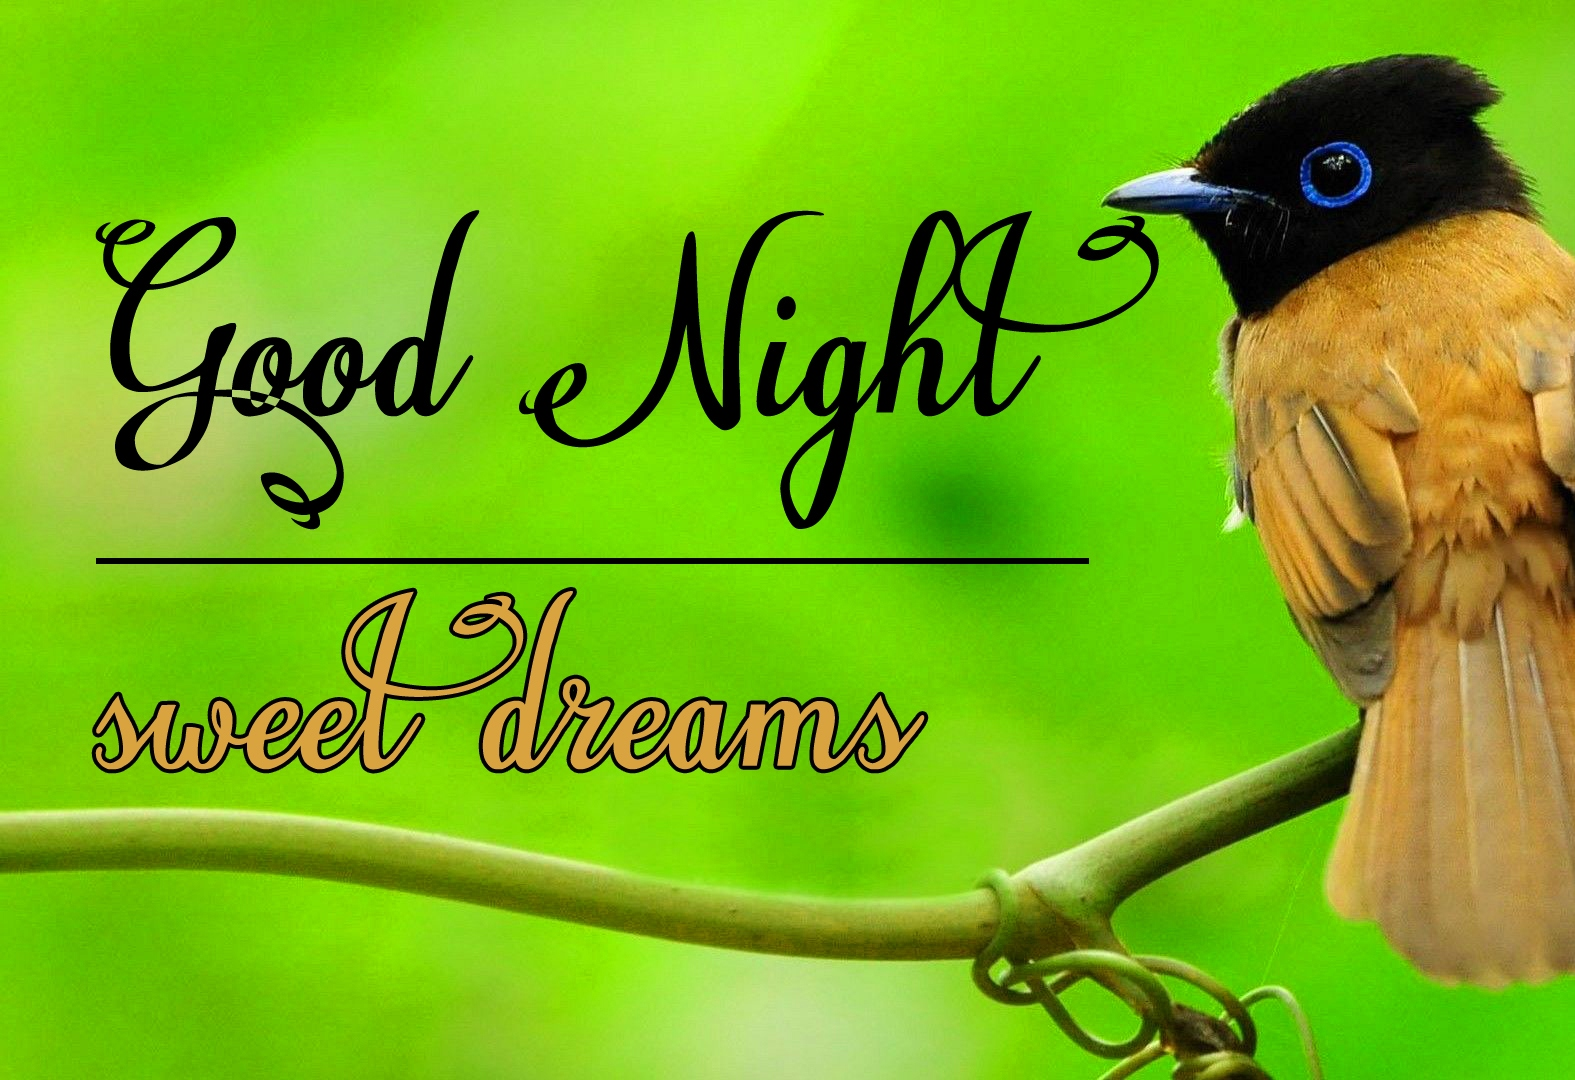 Good night wallpaper hd 21 1